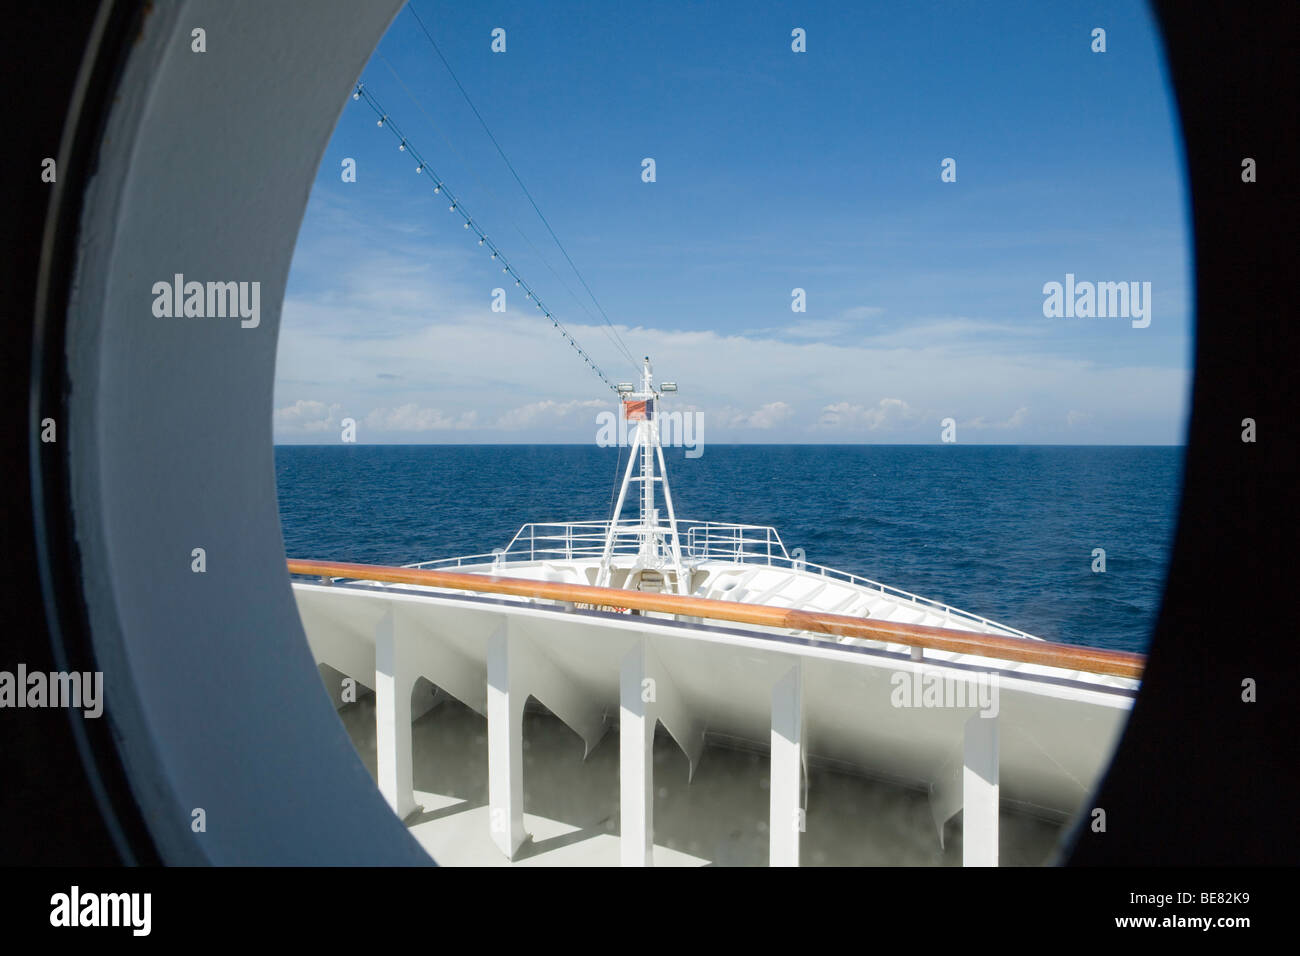 View of MS Columbus Bow, South China Sea, near Thailand, Asia - Stock Image